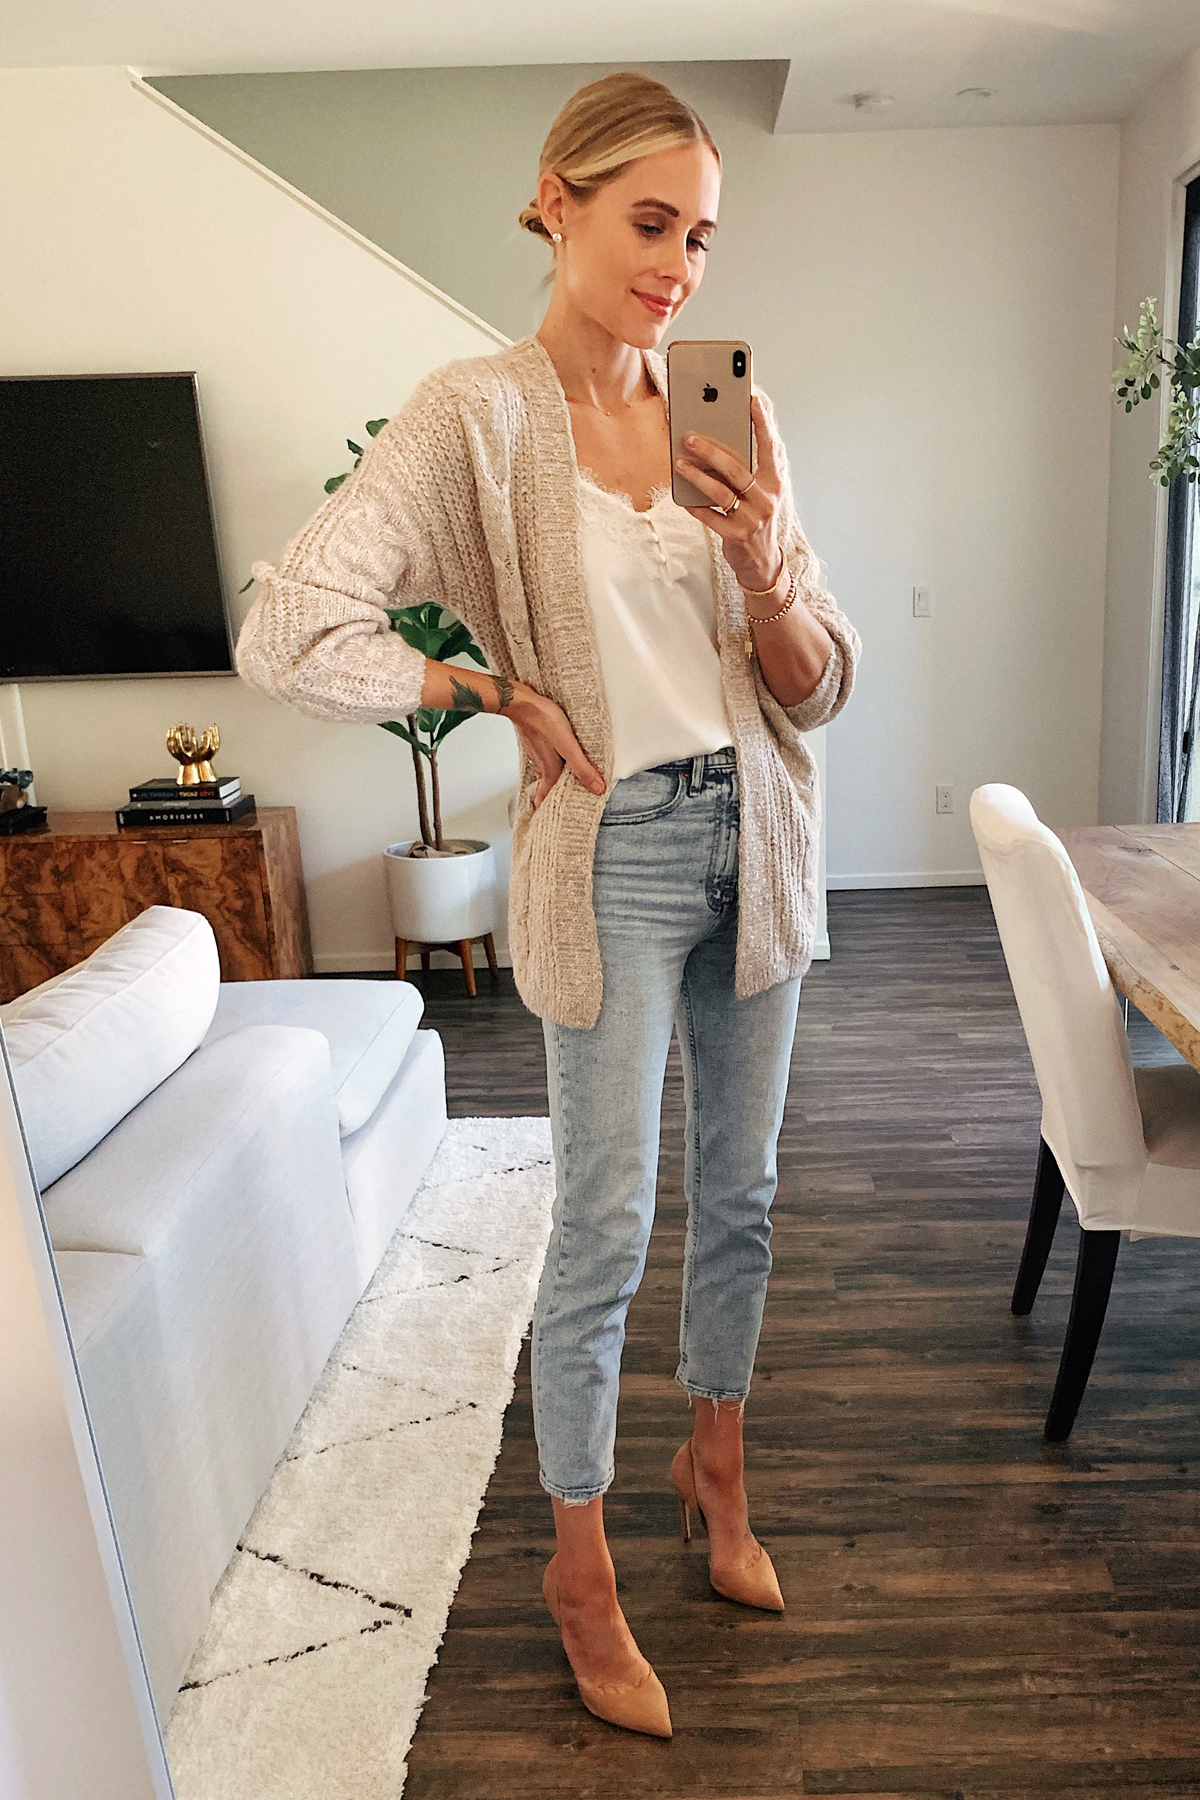 Fashion Jackson Wearing Abercrombie Beige Cardigan White Lace Camisole High Rise Acid Wash Jeans Nude Pumps